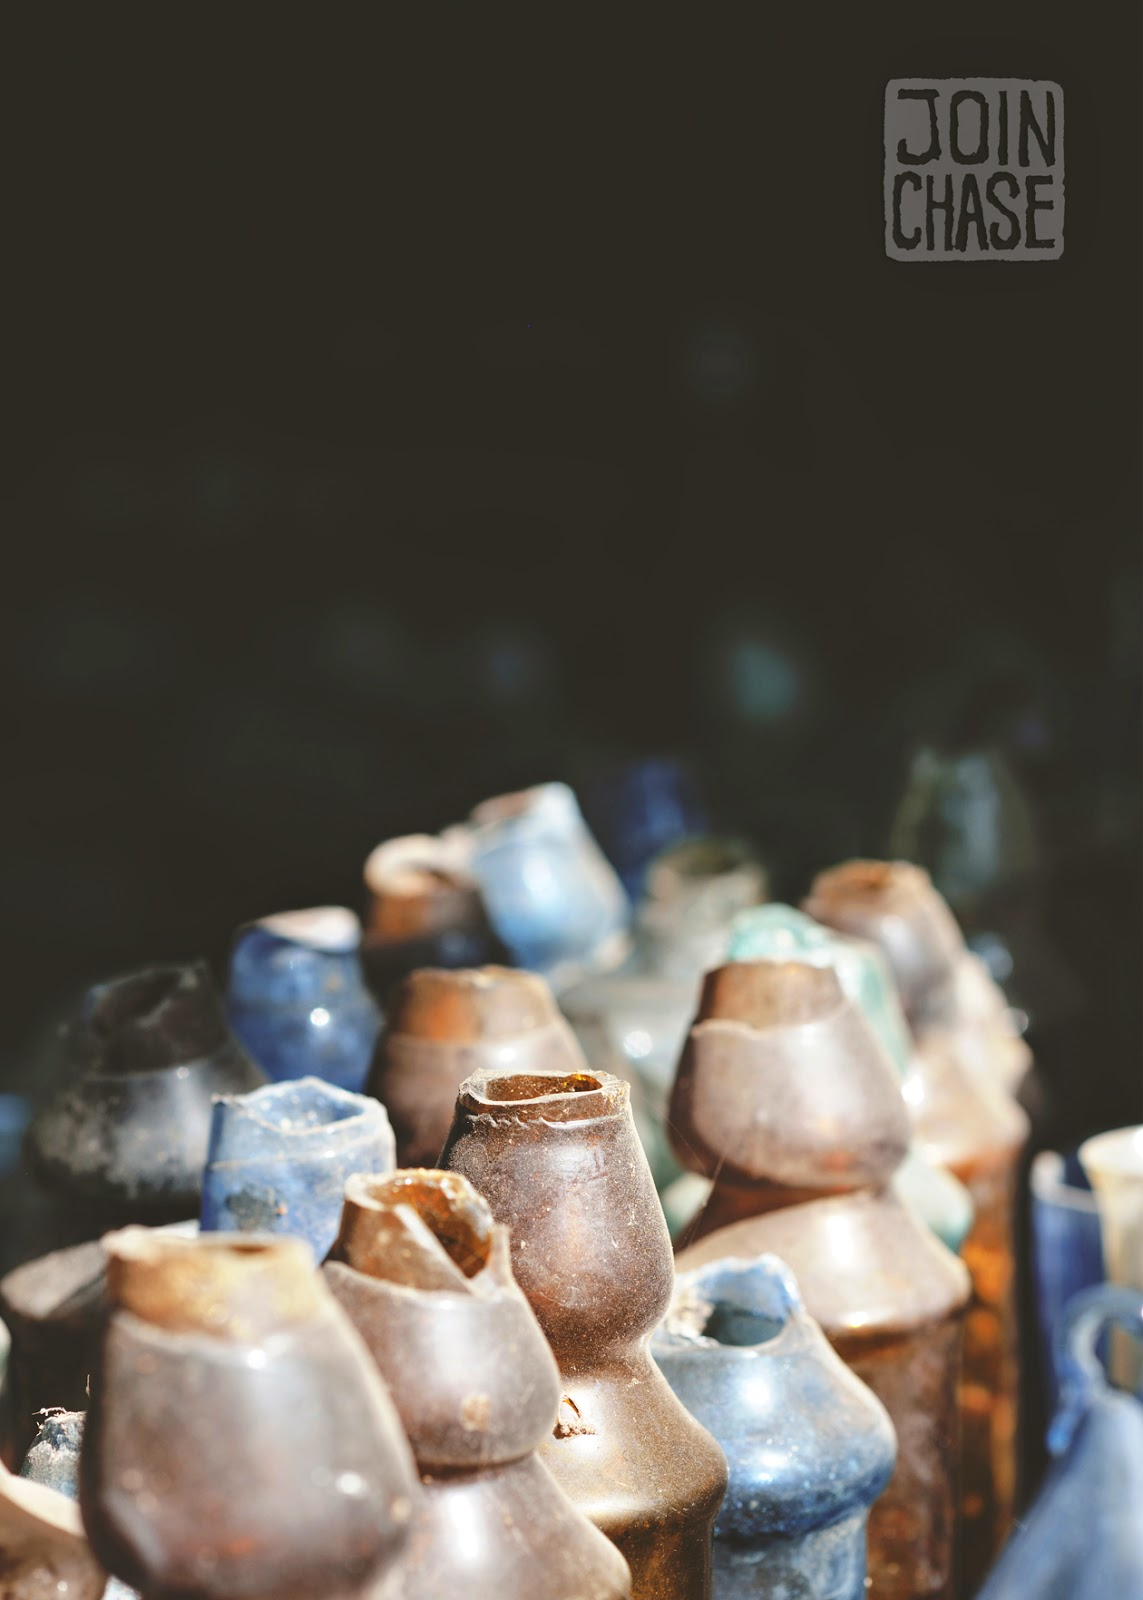 Old, broken glass bottles at Nagar Glass Factory on the outskirts of Yangon, Myanmar.